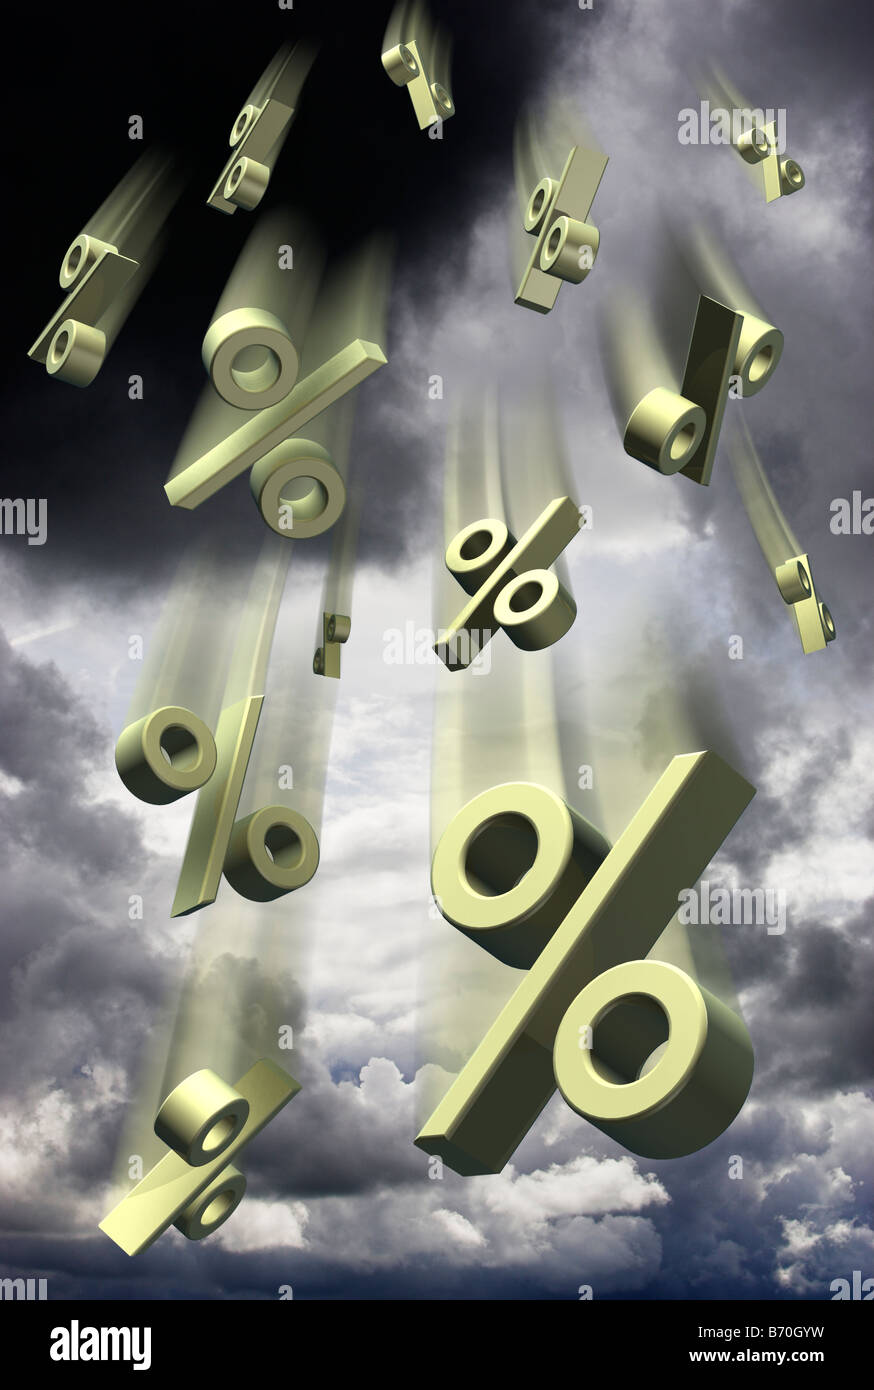 Interest percentage percent rate symbols falling against a stormy sky - digital composite - Stock Image